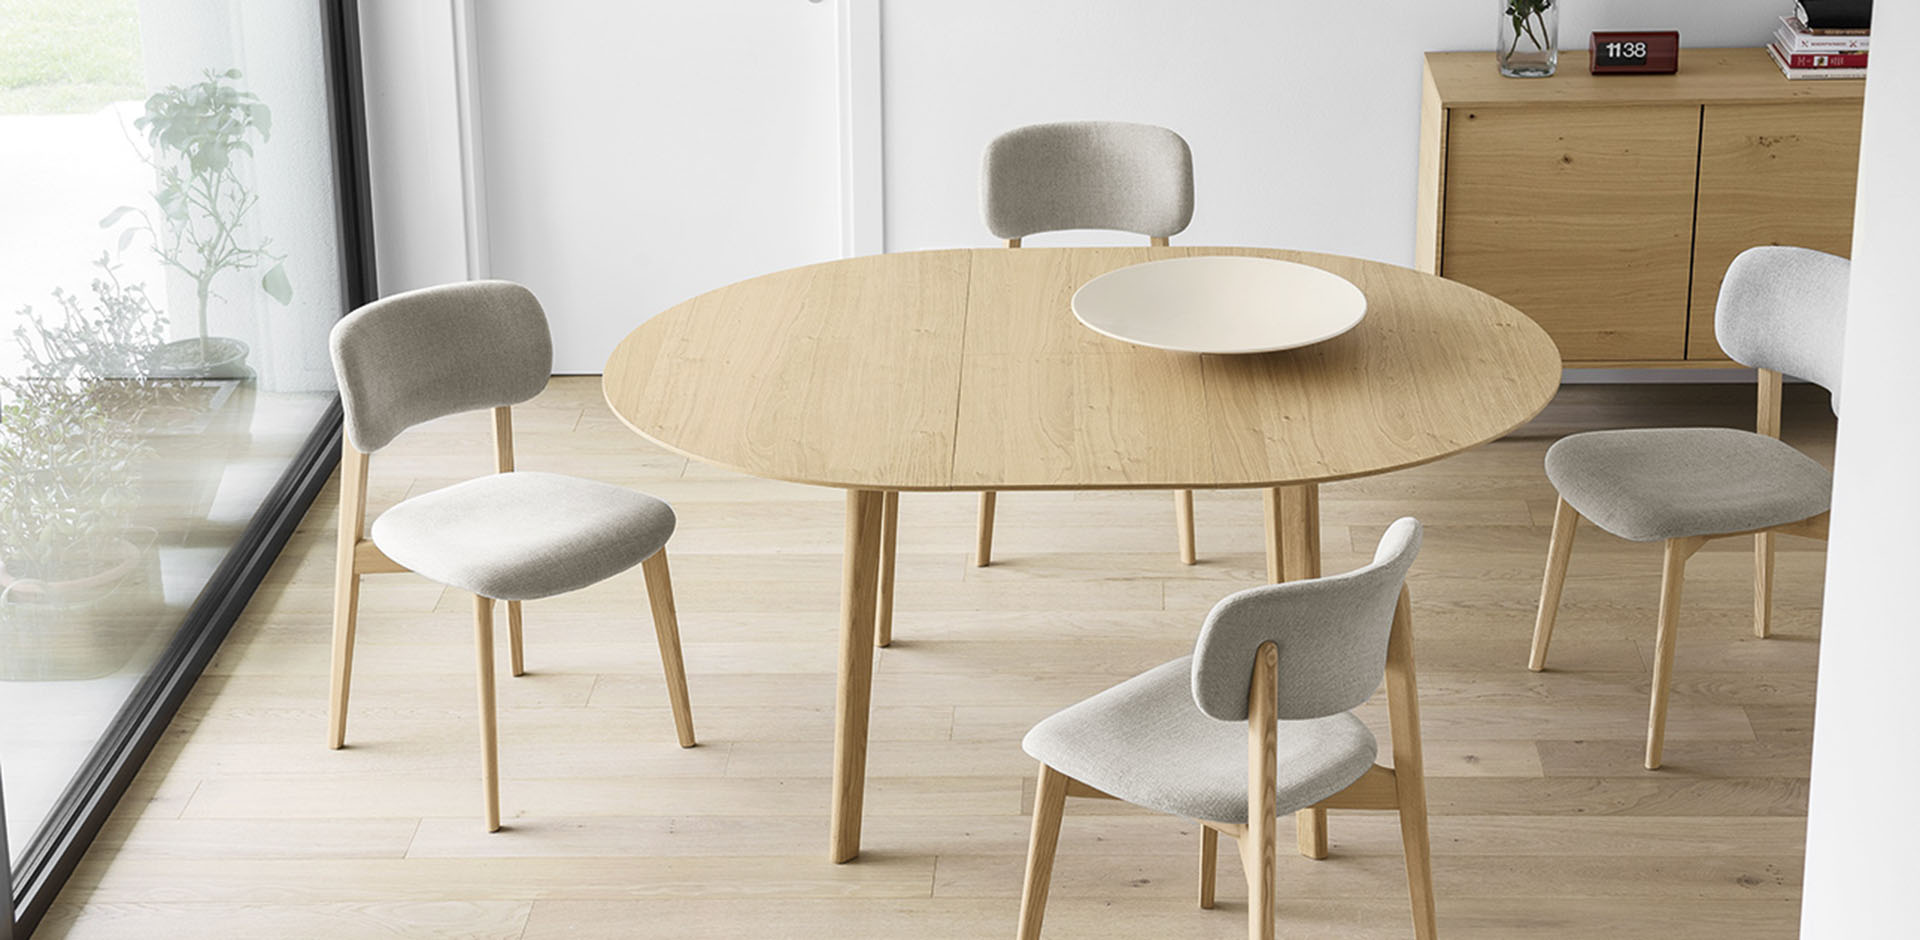 tables - CS4063-D 120 CREAM TABLE